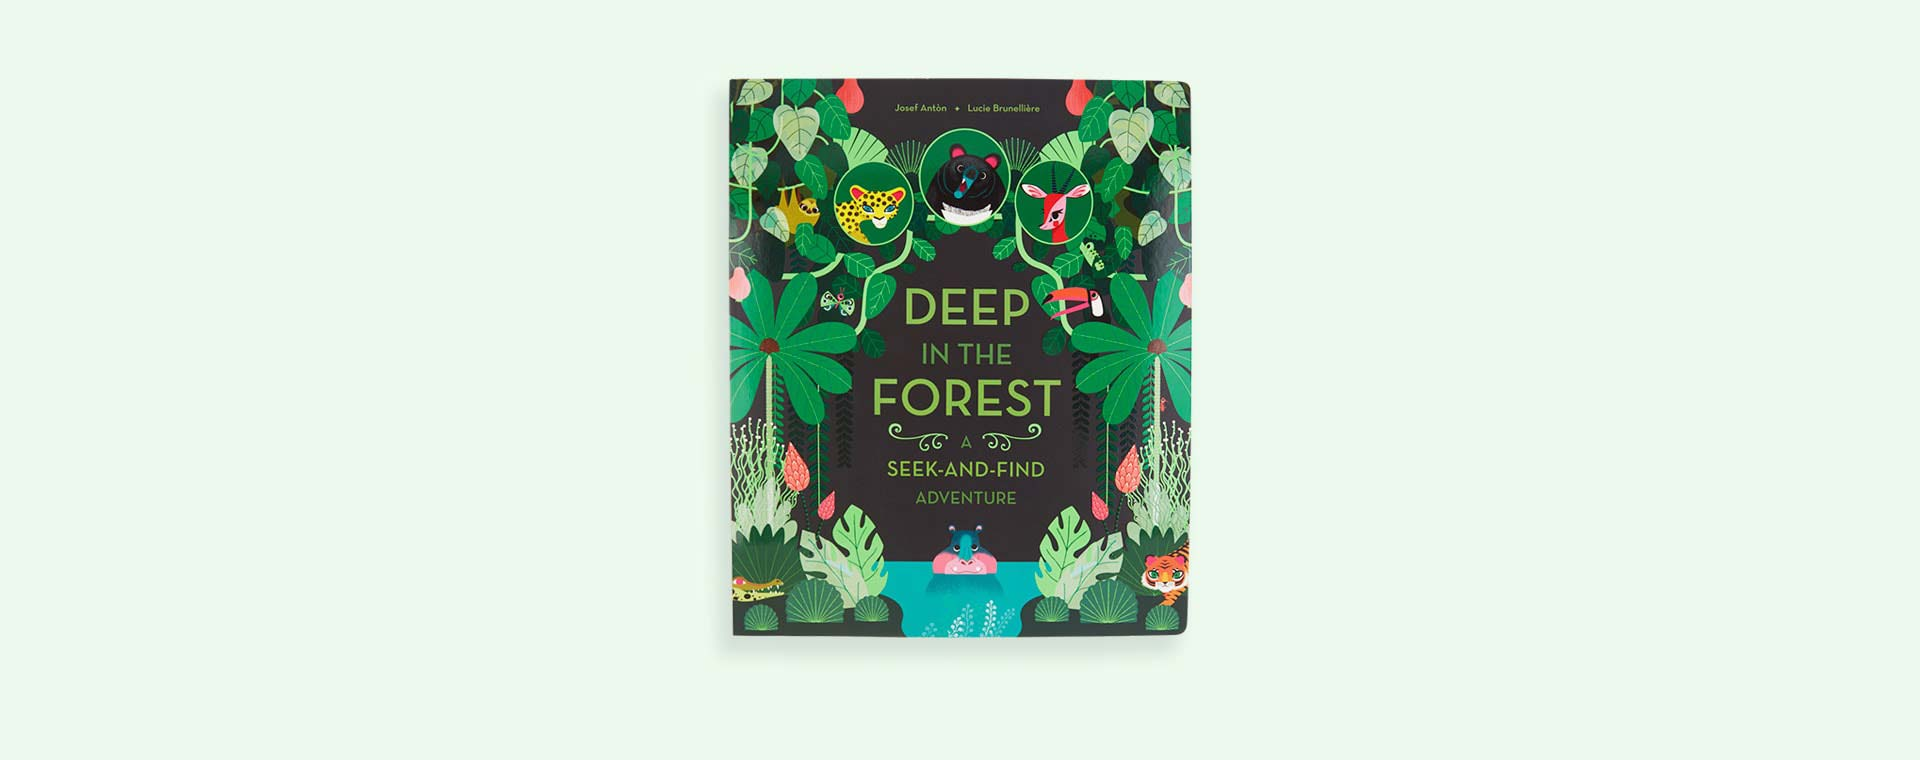 Multi Abrams & Chronicle Books Deep in the Forest Seek and Find Adventure